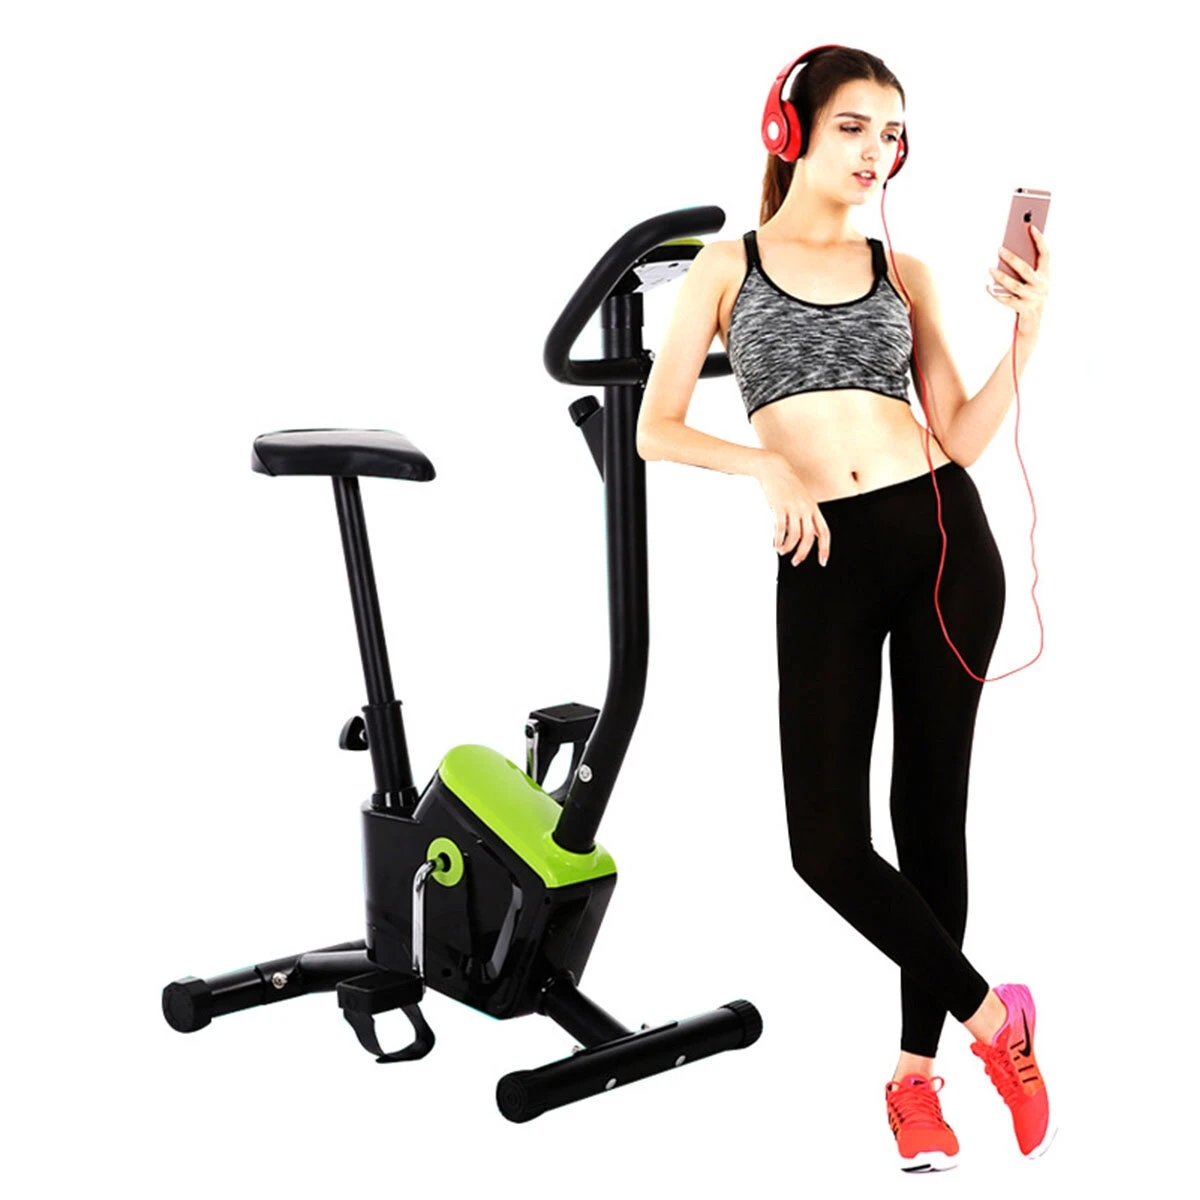 Cardio Exercise Bike Home Indoor Sport Fitness Workout Folding Training Bicycle Exercise Tools